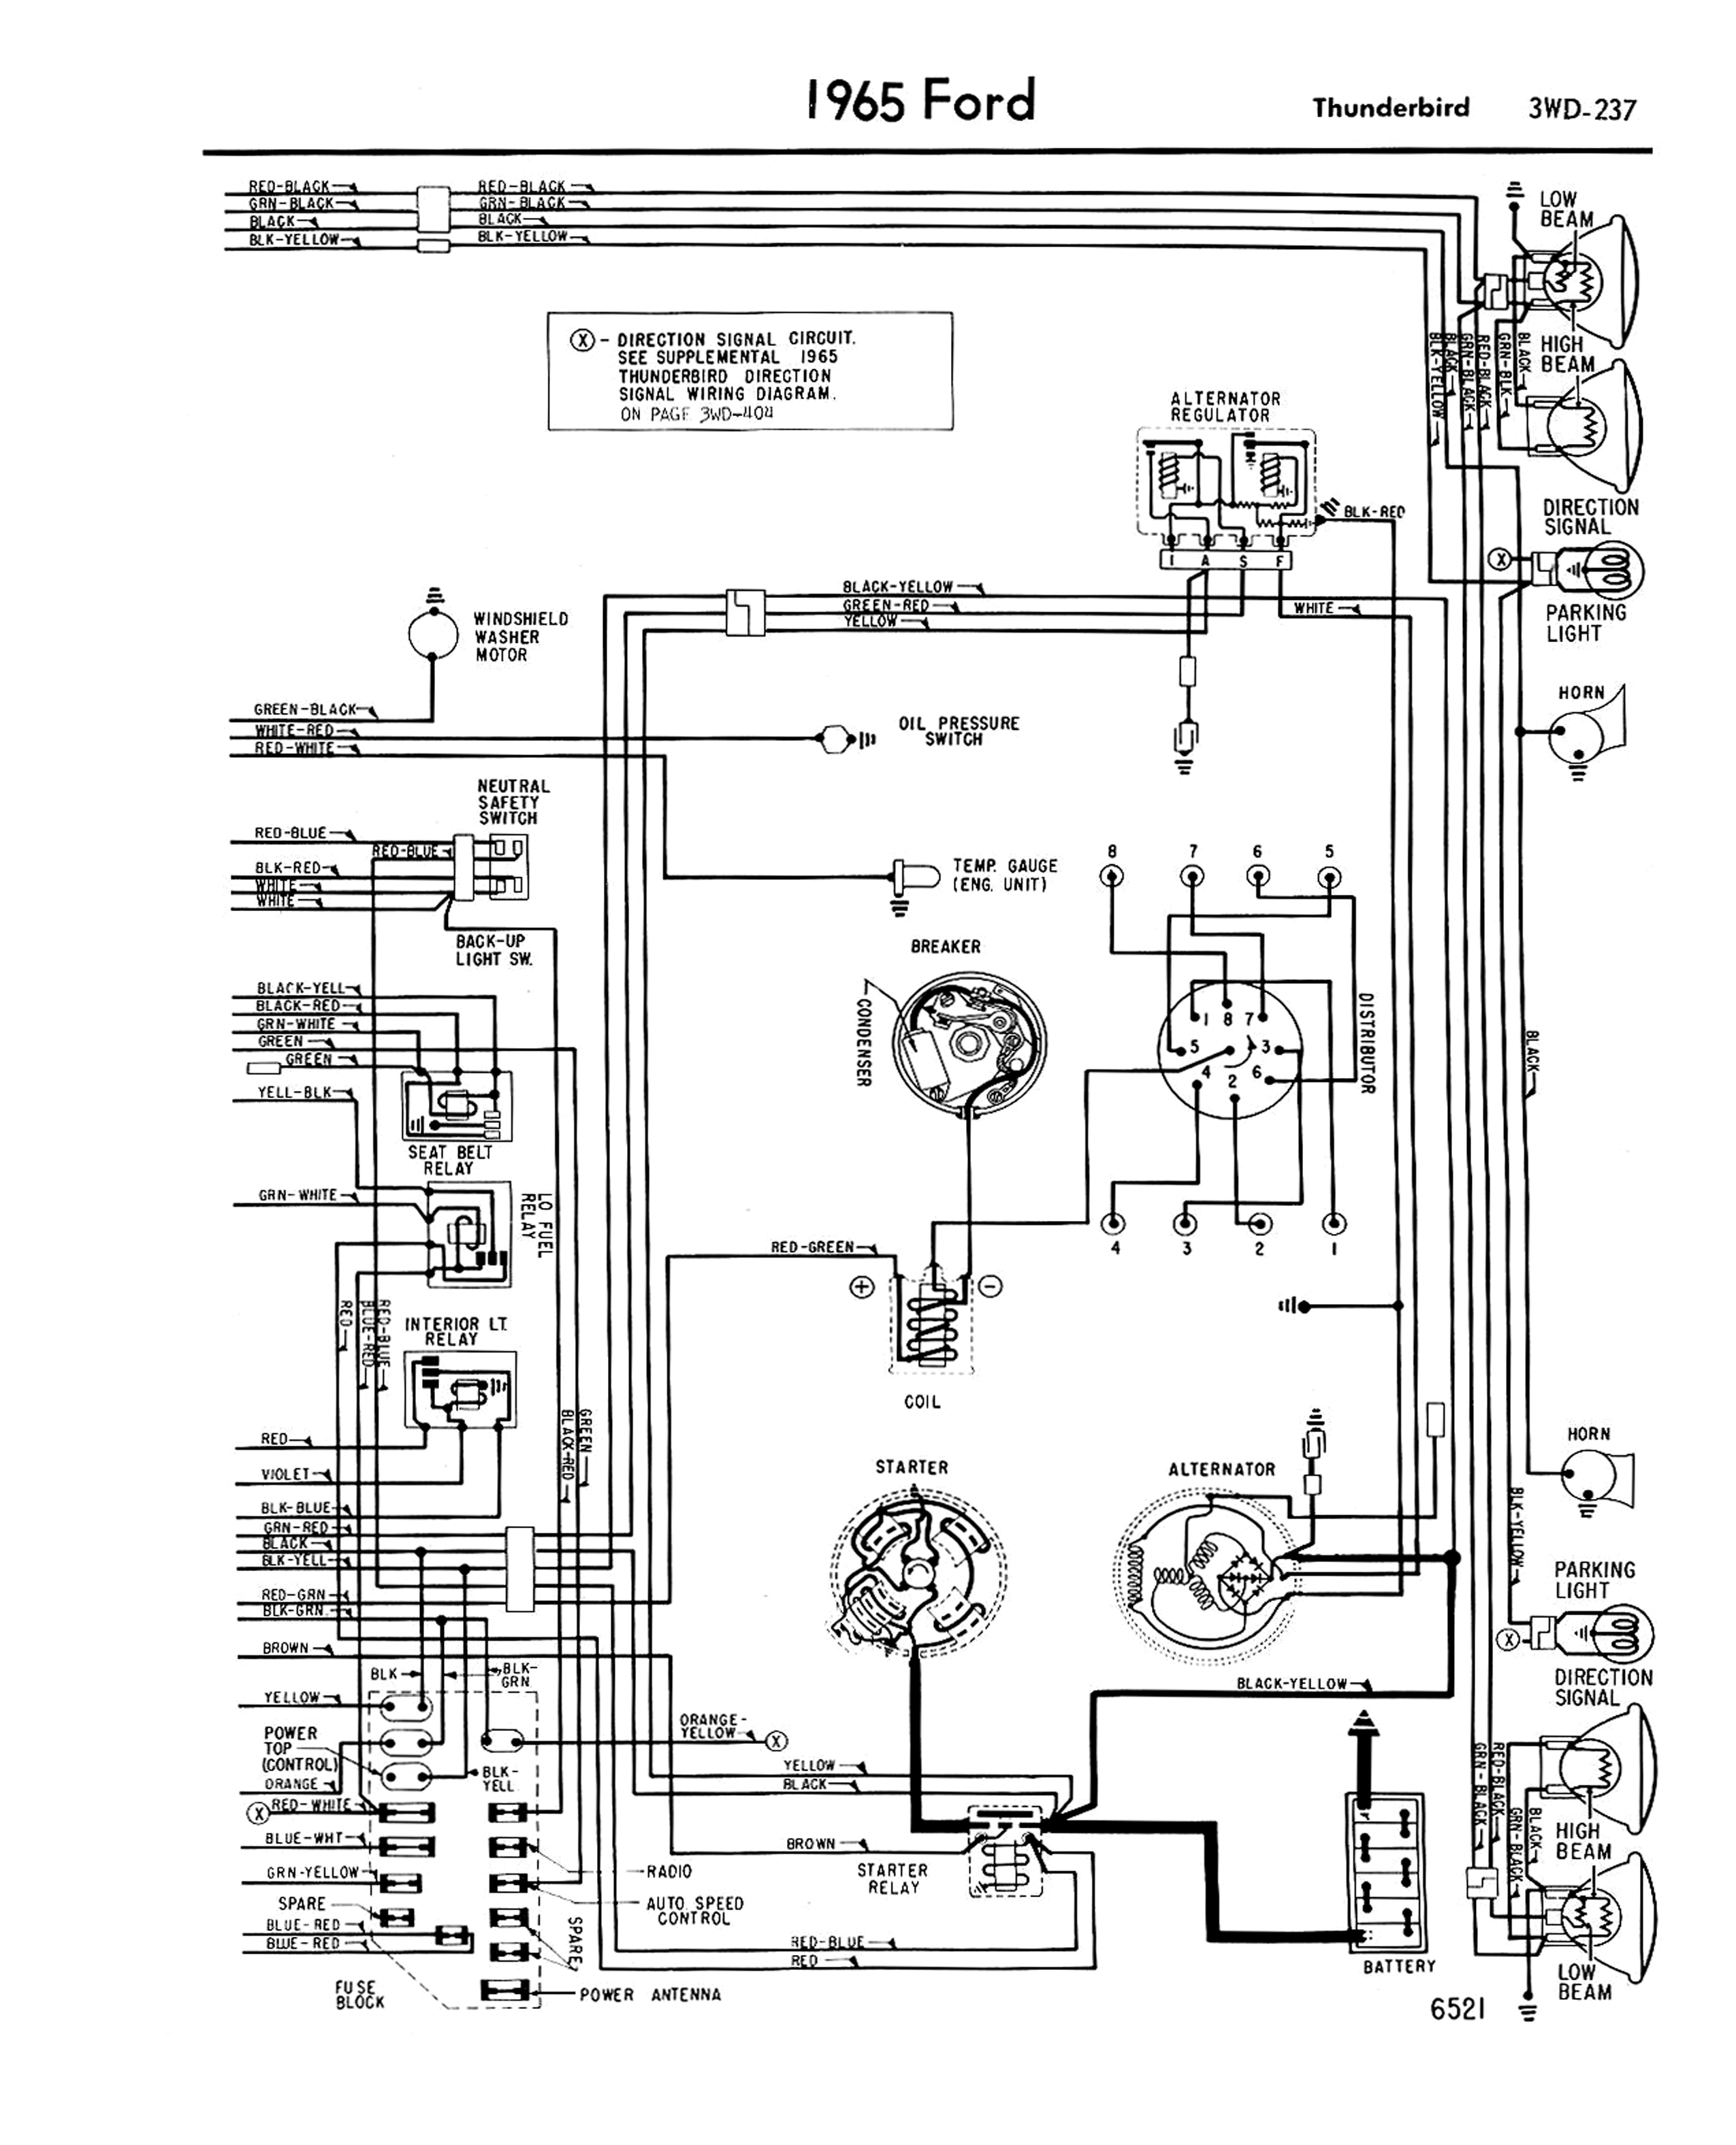 65TbirdWiringDiagramRight 1958 68 ford electrical schematics 1965 thunderbird alternator wiring diagram at soozxer.org